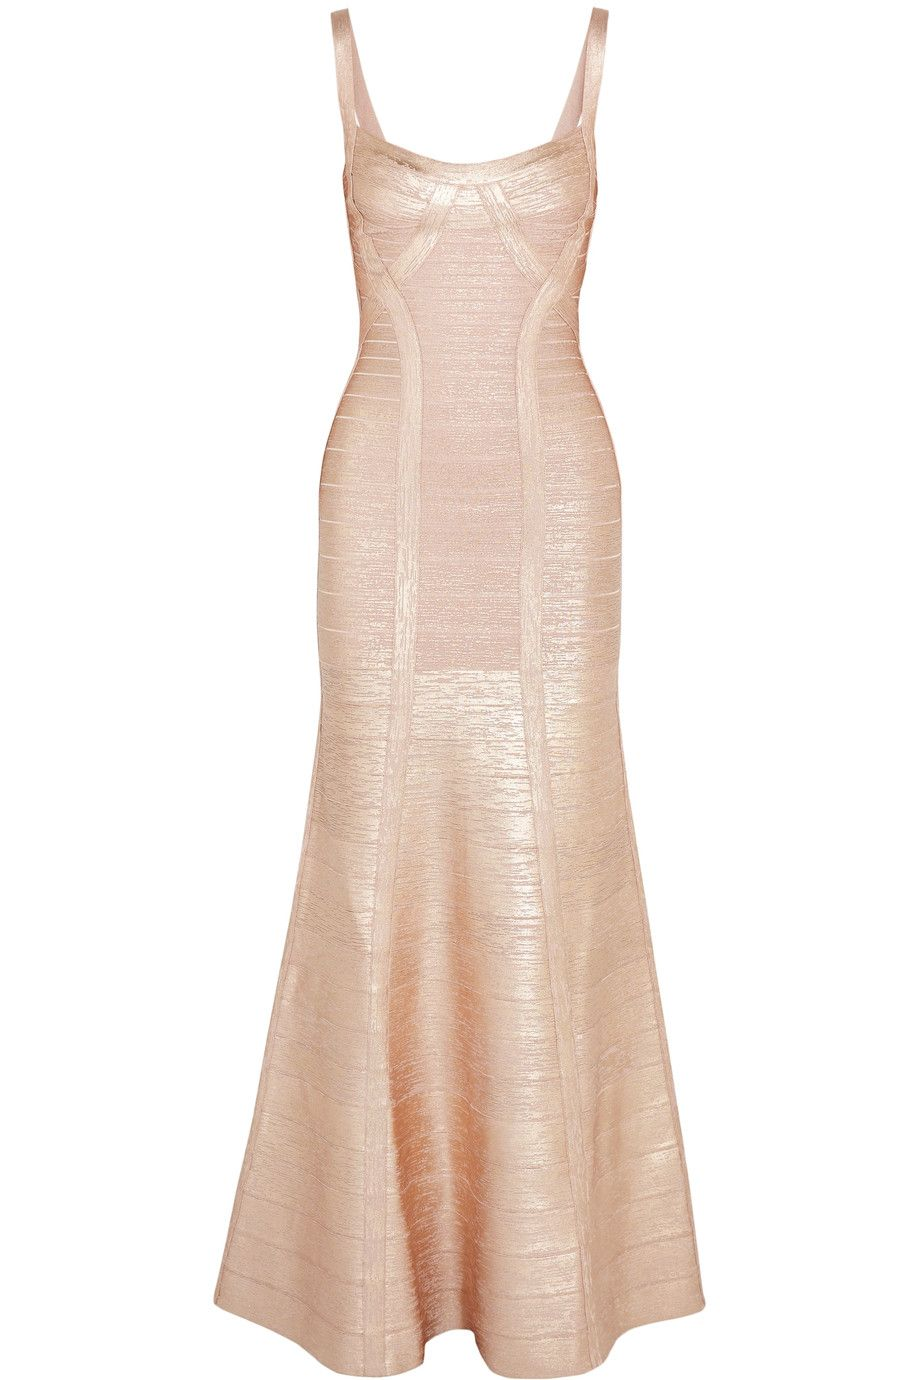 f3fcd4ca43b7 HERVE LEGER Metallic bandage gown.  herveleger  cloth  gown